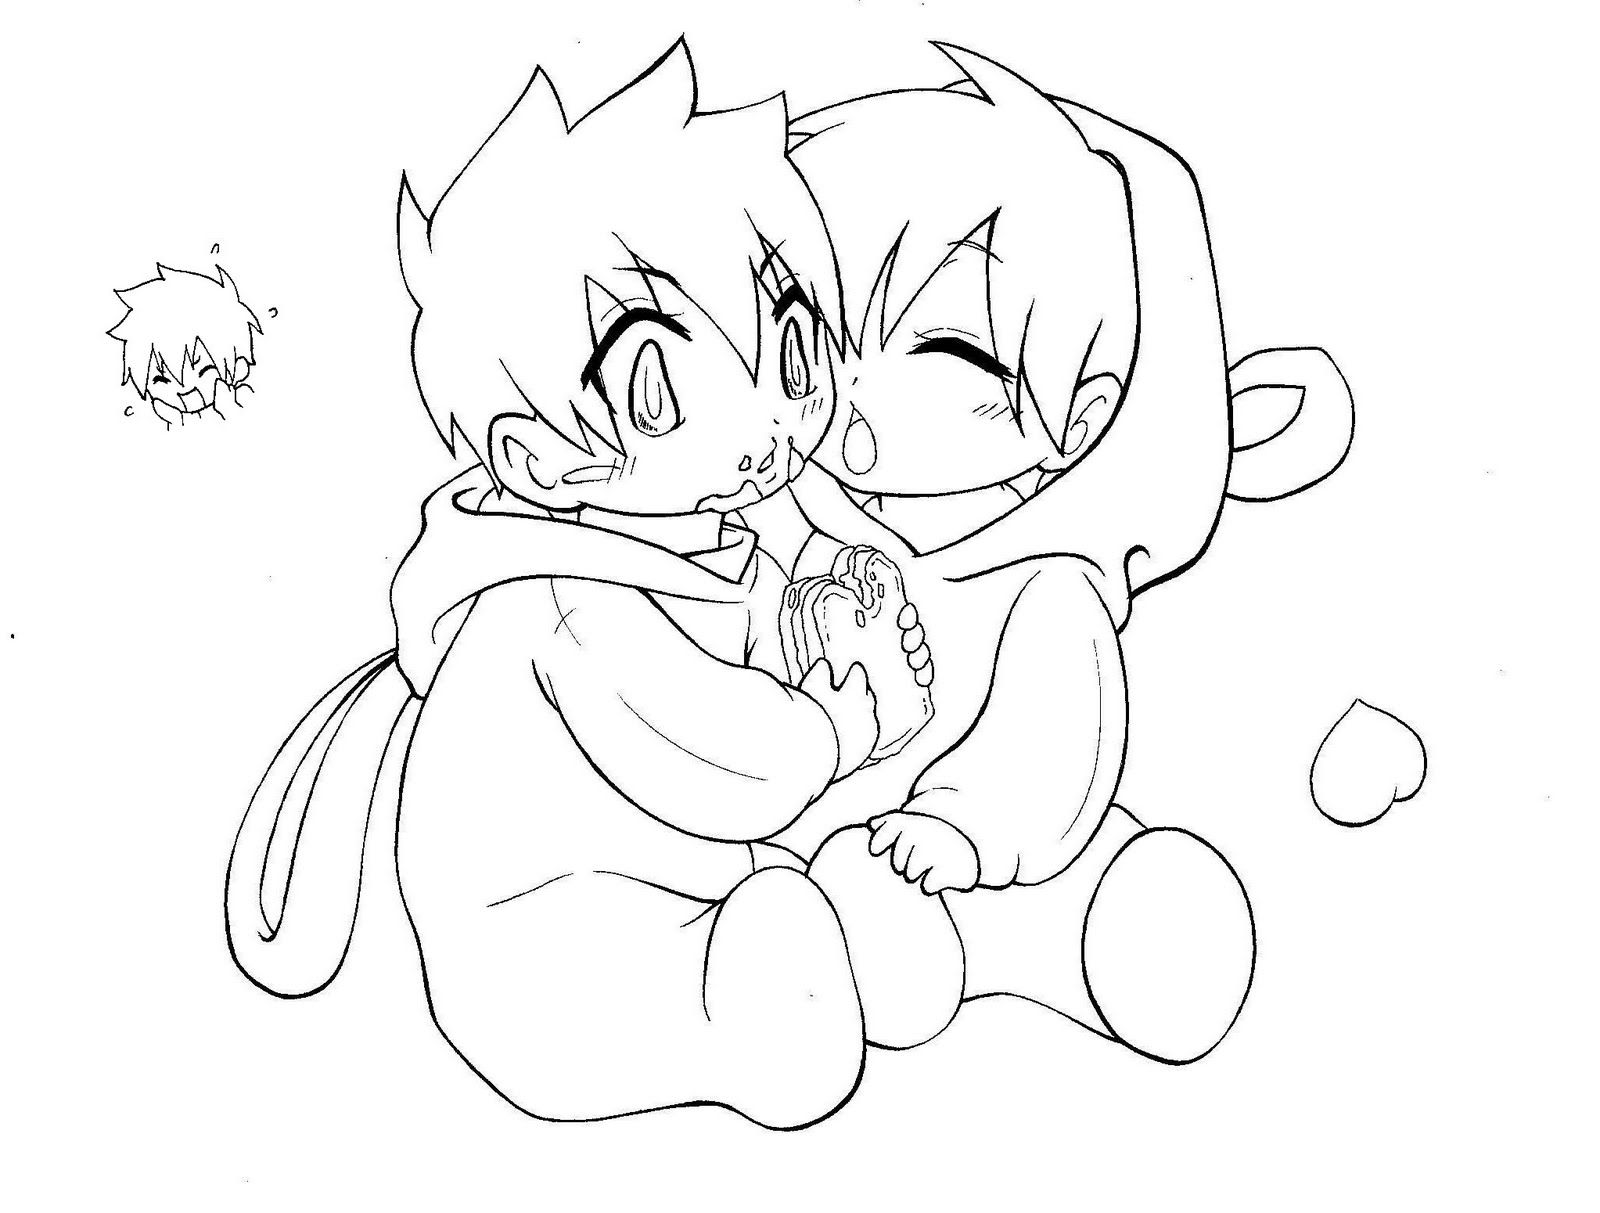 couples anime coloring page free printoutjpg 1600